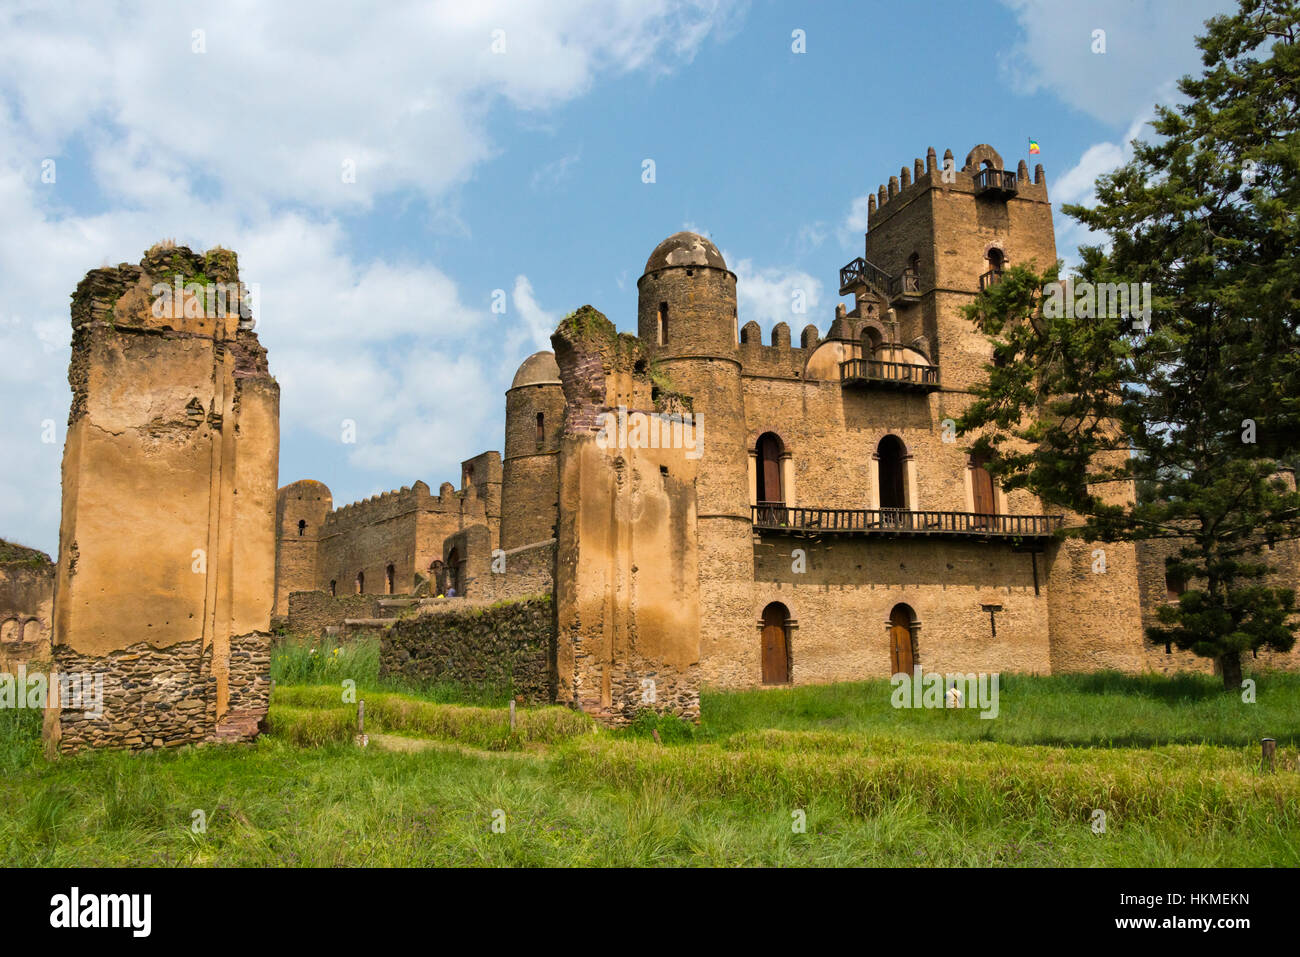 Fasilides' Castle in fortress-city of Fasil Ghebbi founded by